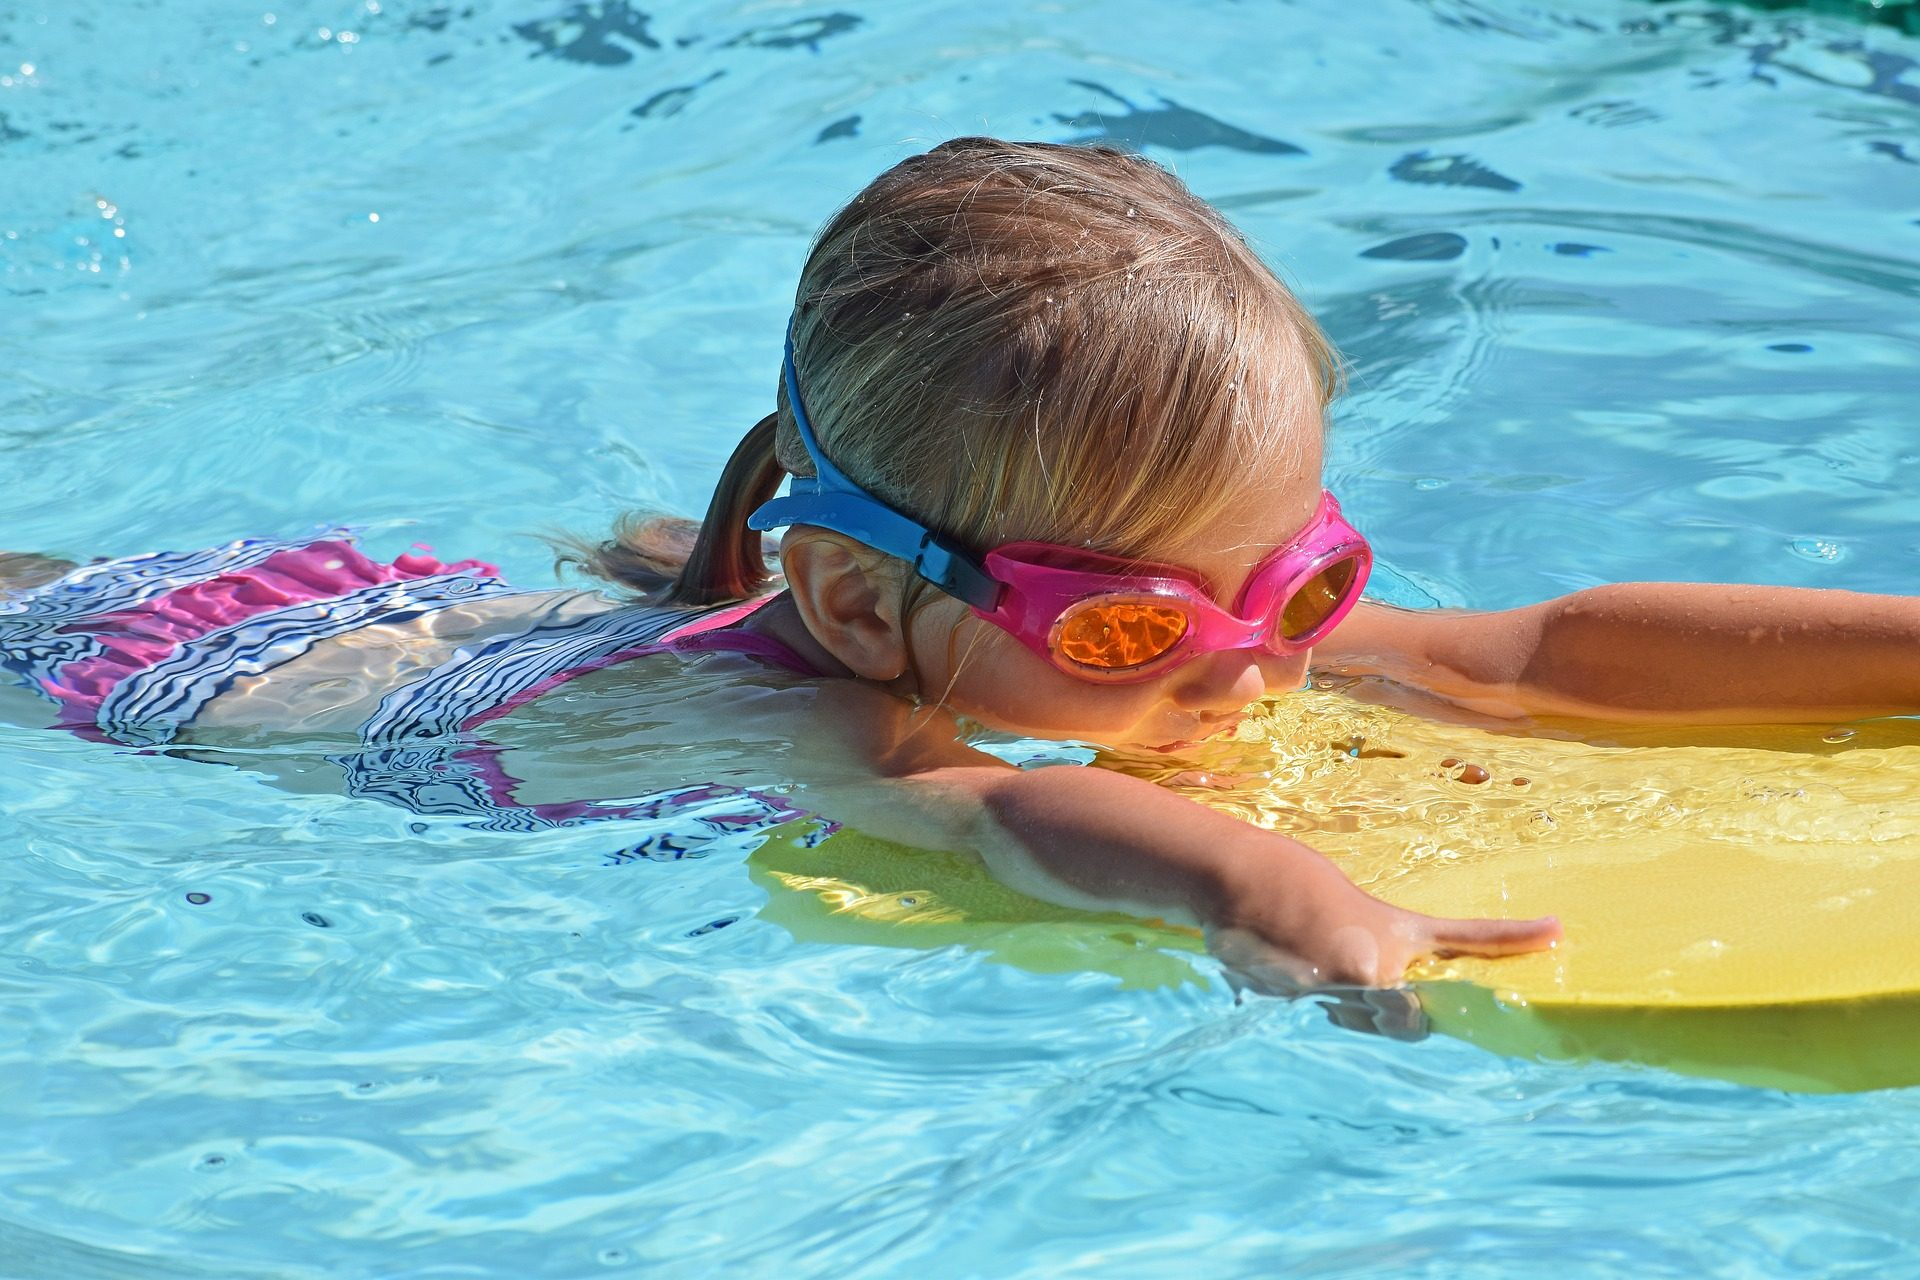 Please watch your kids around the pool so this doesn't happen [watch]